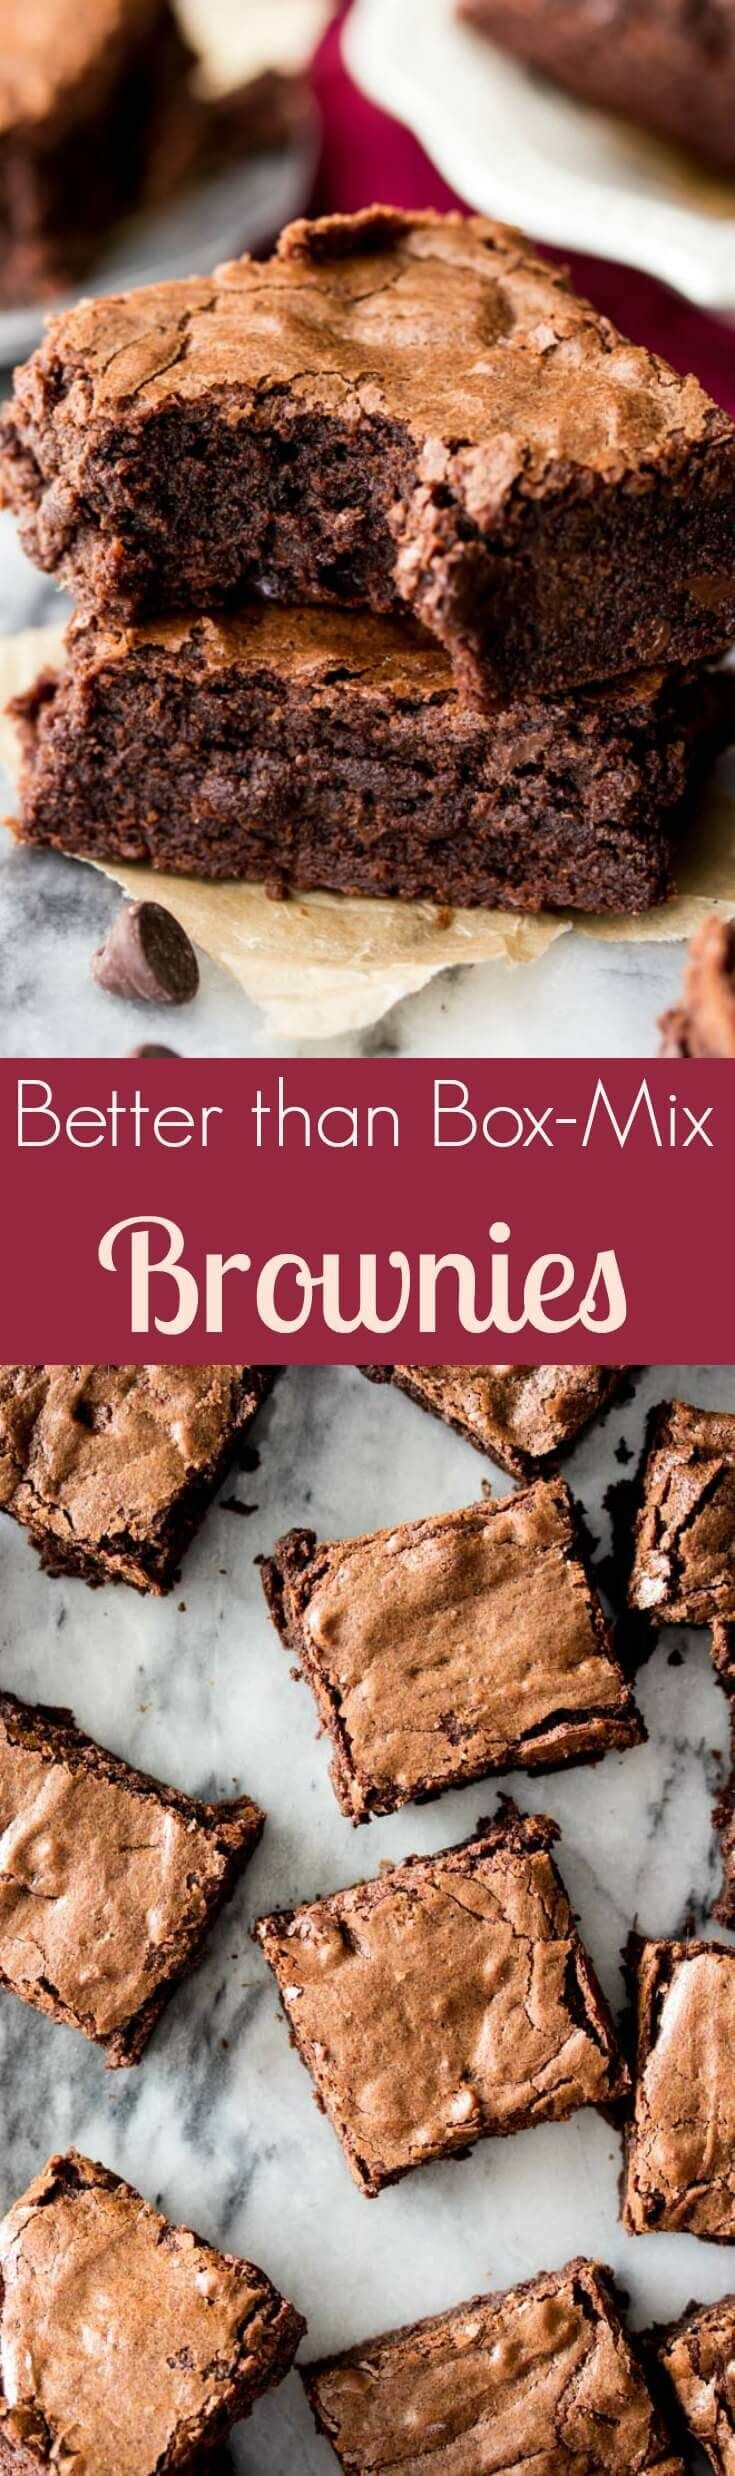 Homemade Brownies from Scratch -- easy, chewy, chocolaty, and made in one bowl! || Sugar Spun Run via @sugarspunrun